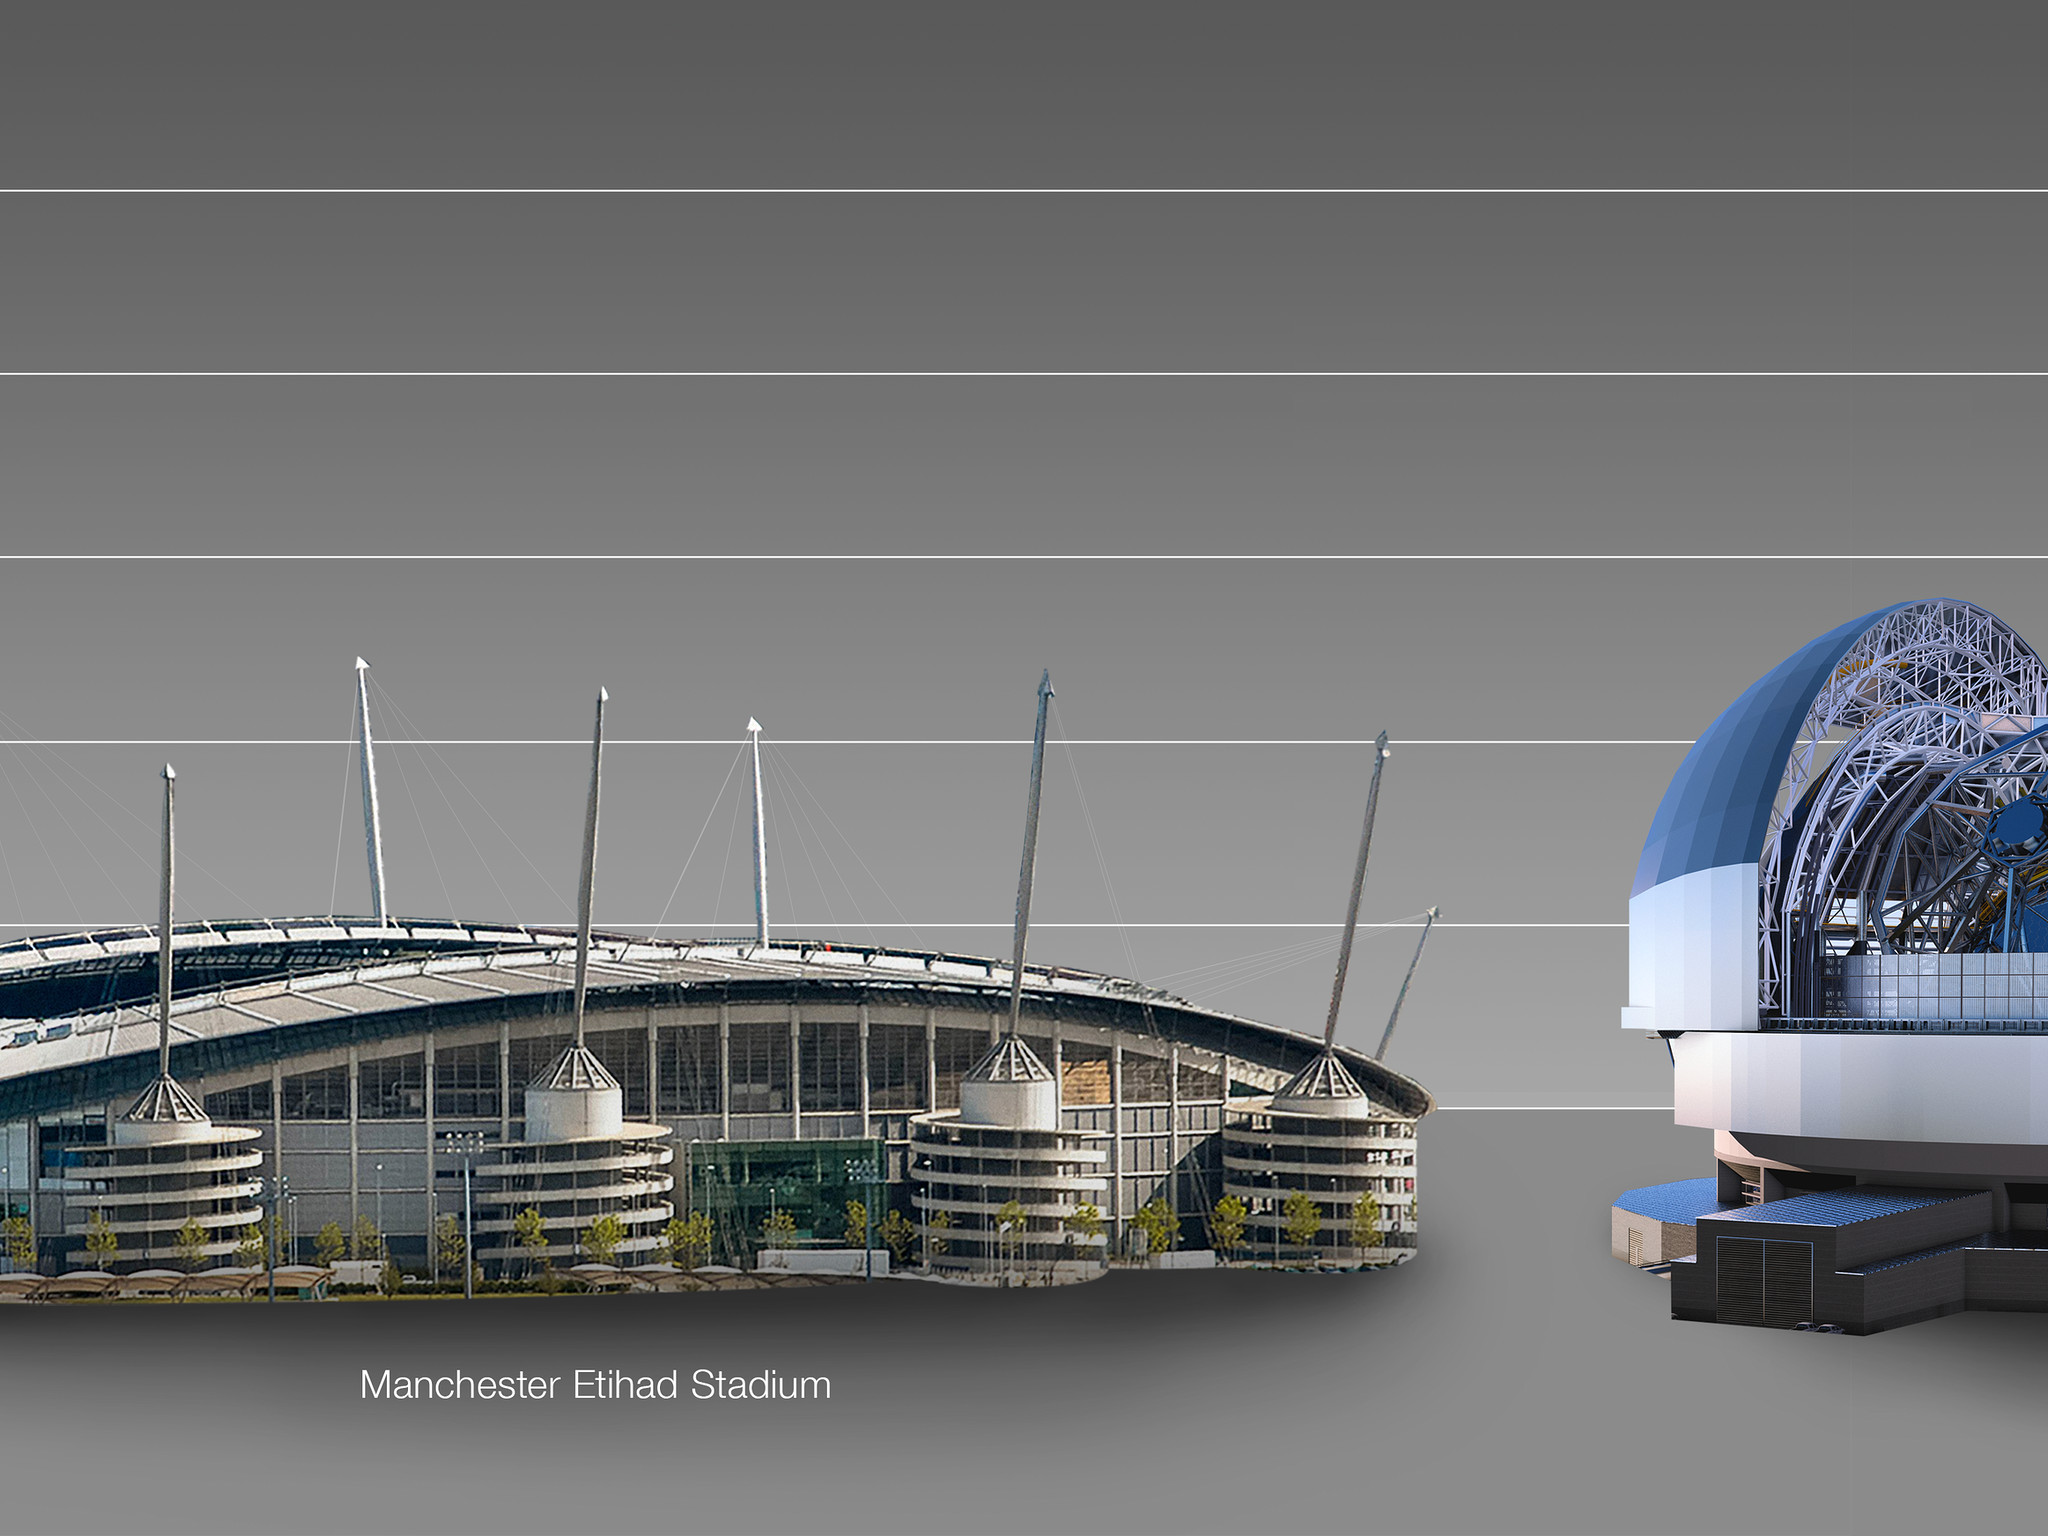 The Elt Compared To The Manchester Etihad Stadium In The Uk